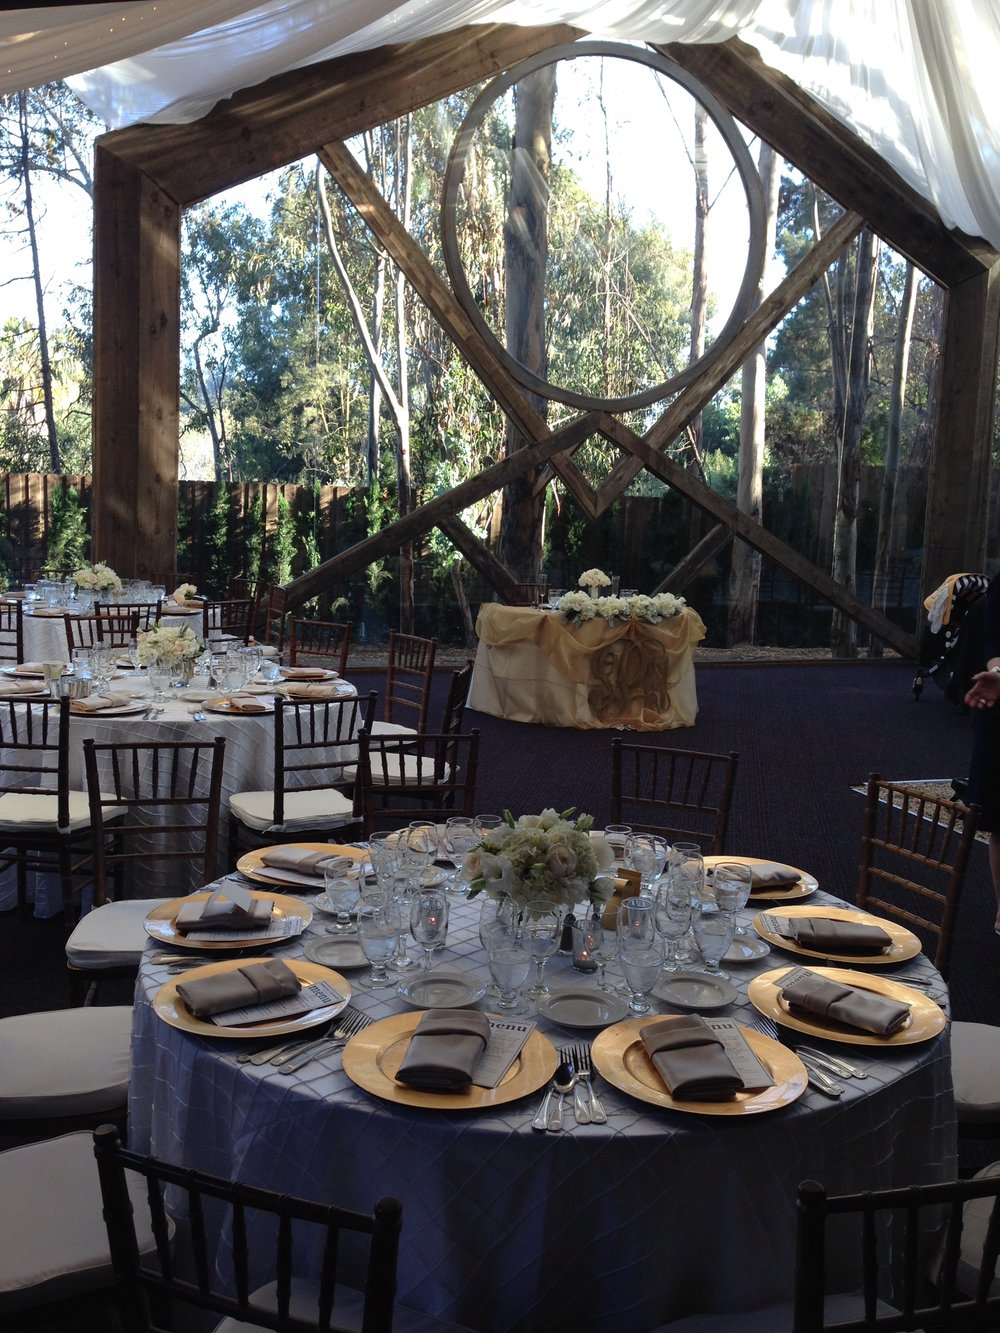 The Oaks Room at Calamigos